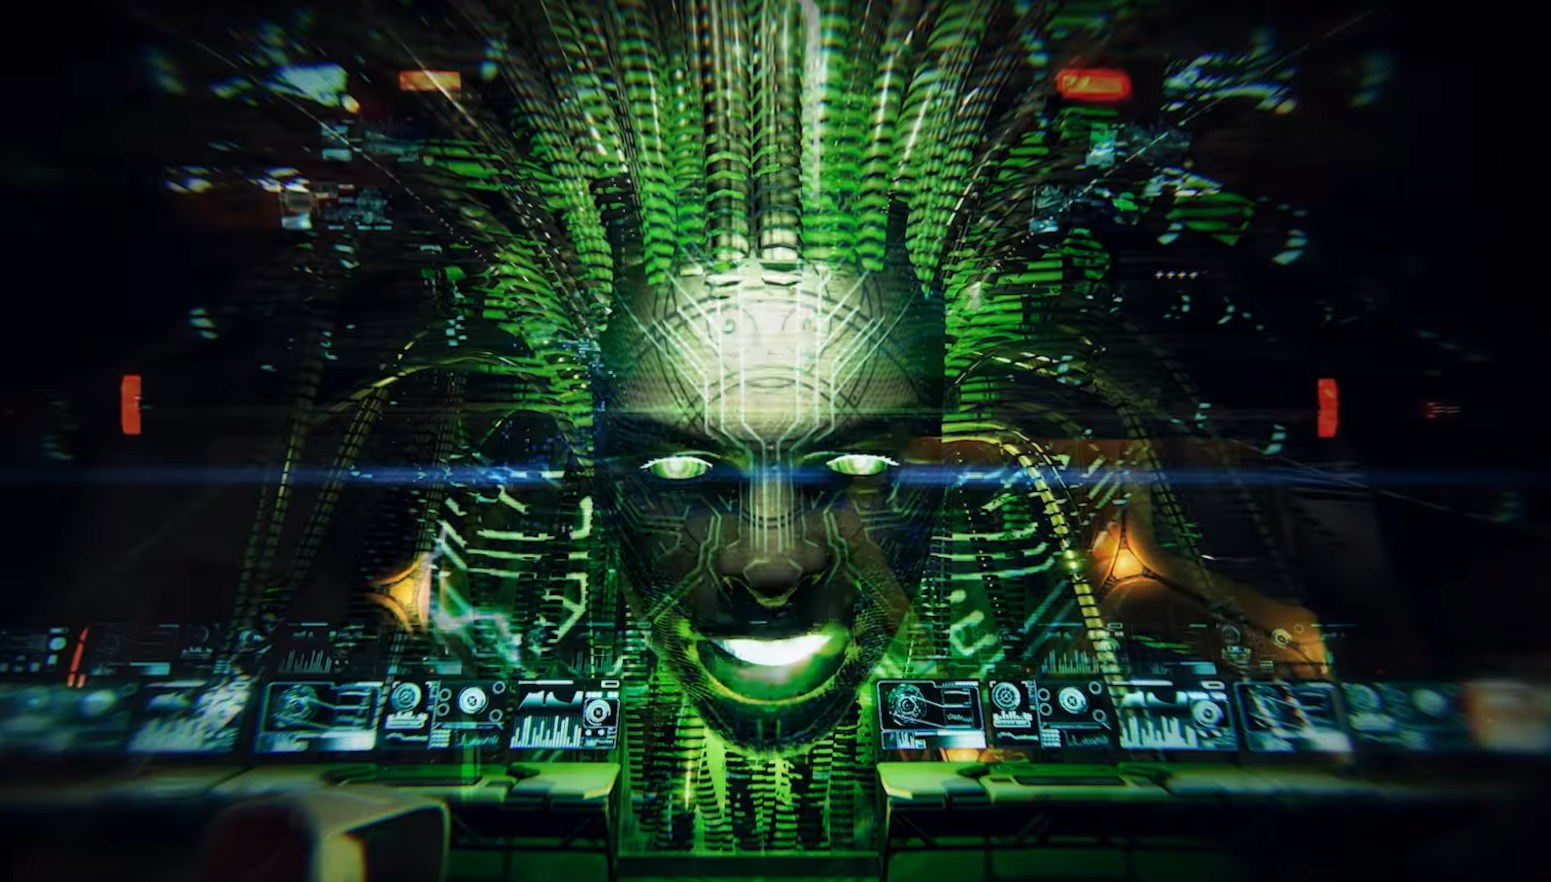 OtherSide will self-publish System Shock 3 if it has to, but hopes someone else will do it | PC Gamer